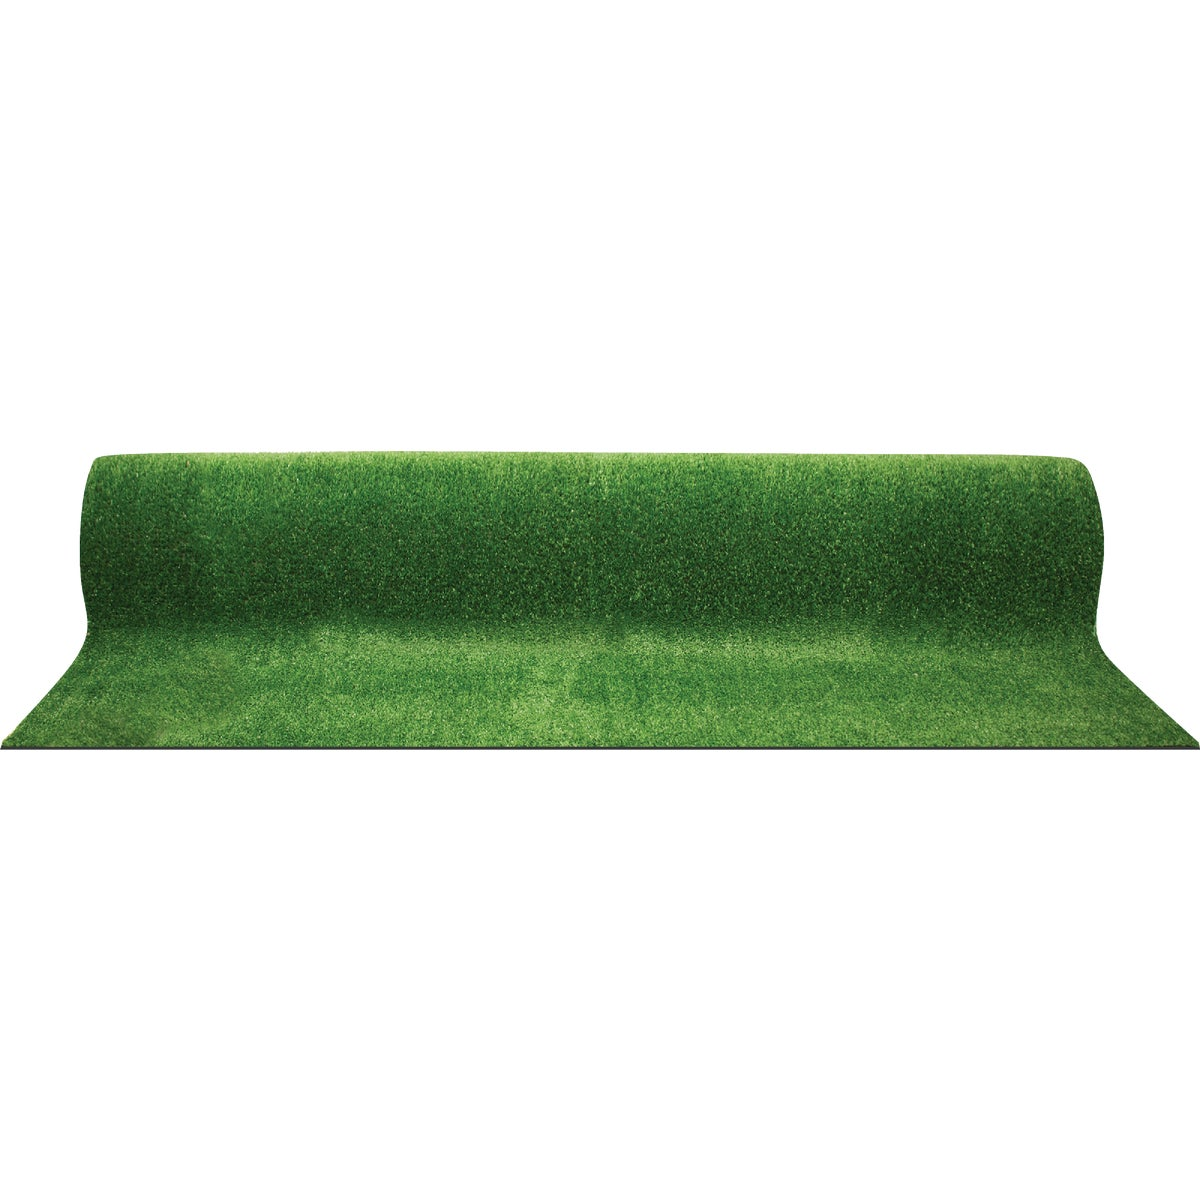 6X100 GREEN GRASS CARPET - LEGGN06 by Dennis W J & Co